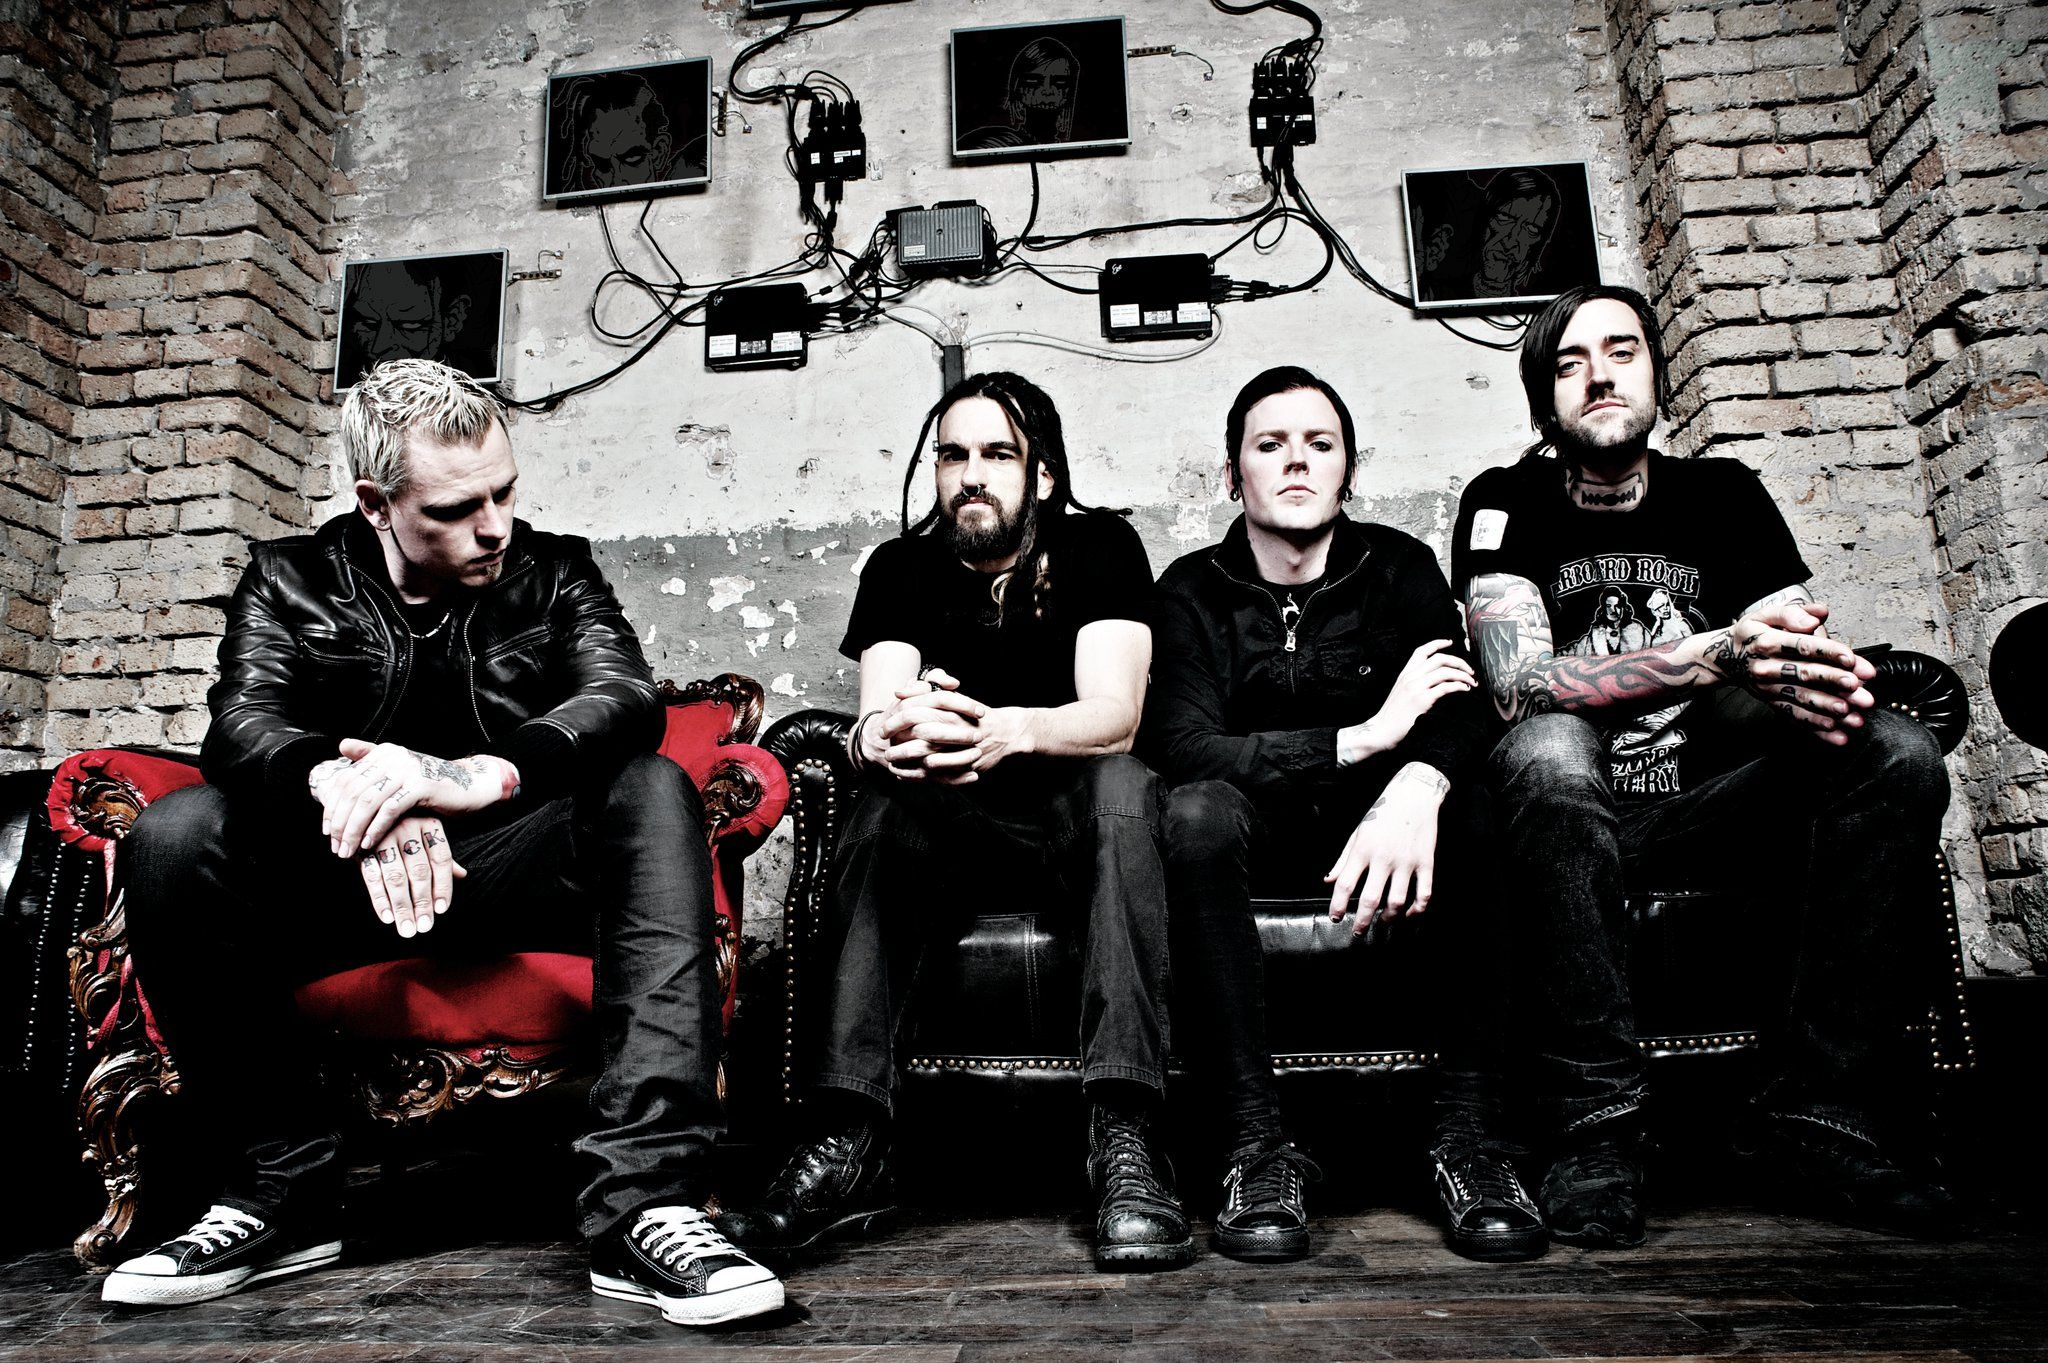 Combichrist (Andy LaPlegua) with LIVE band members z_marr (Gregory